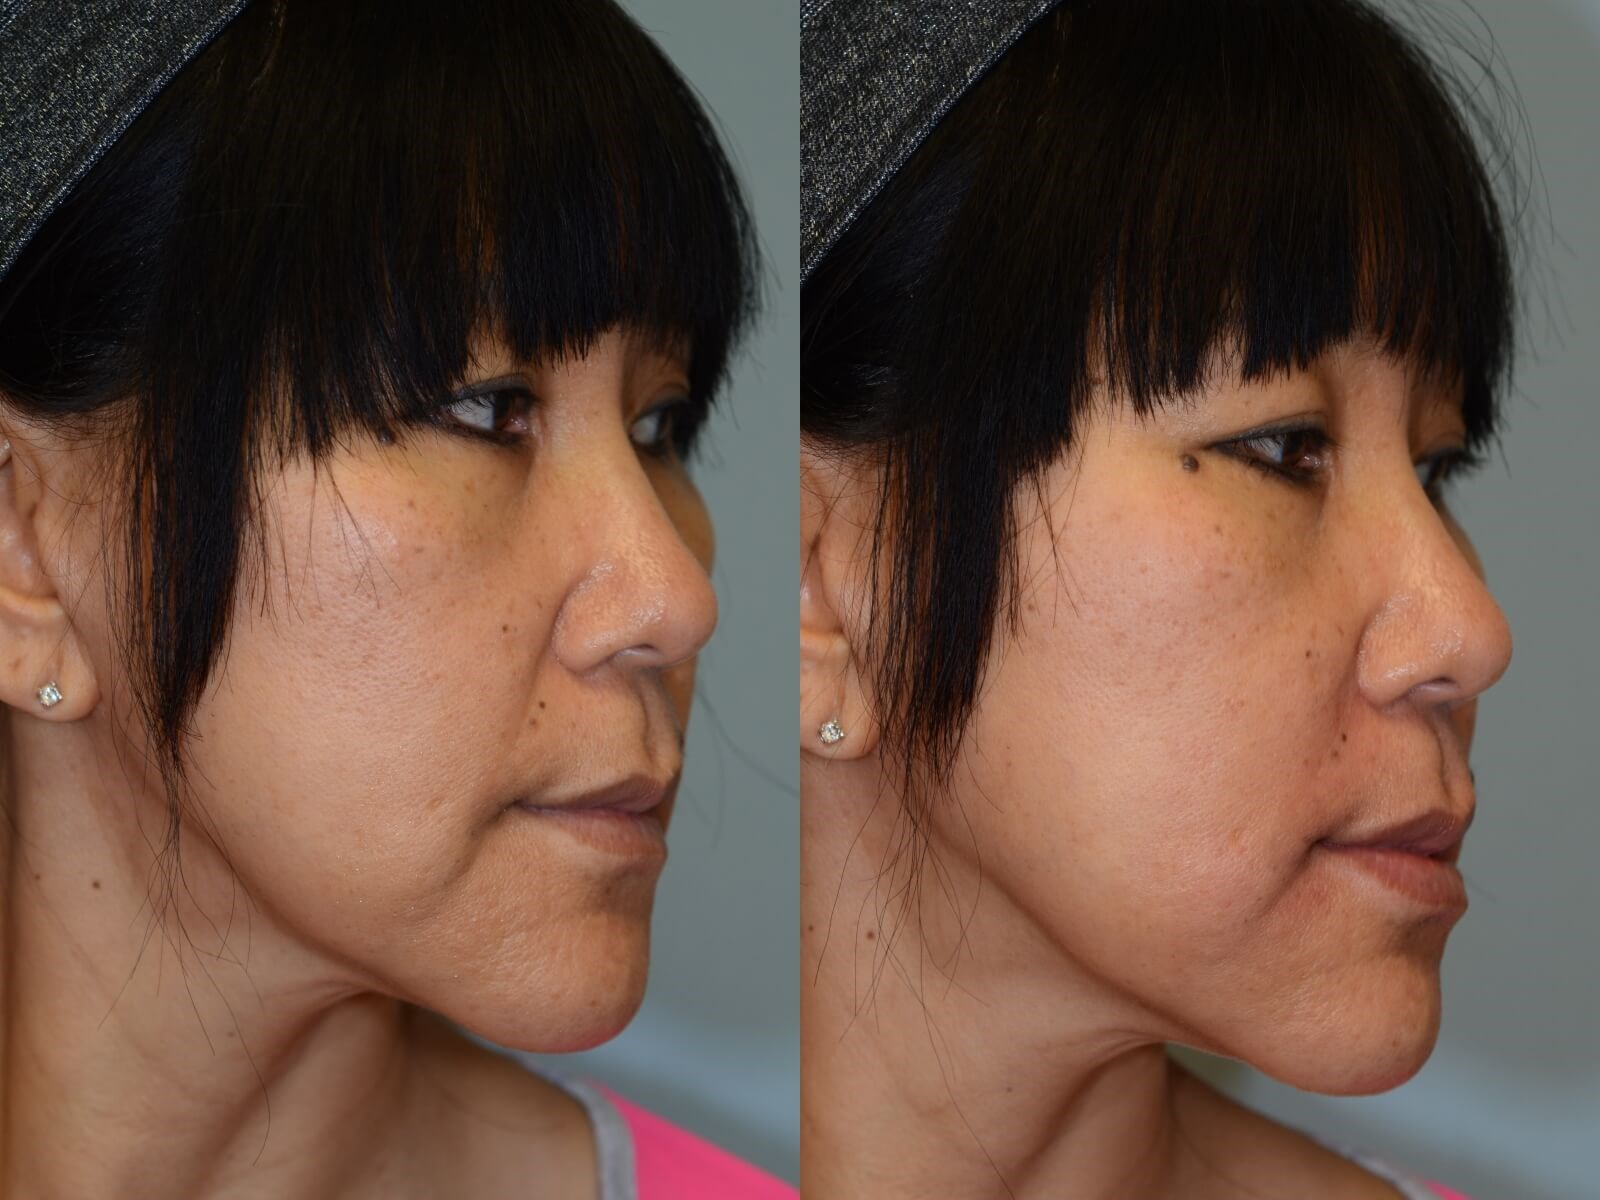 Juvederm to smooth smile lines Before and After